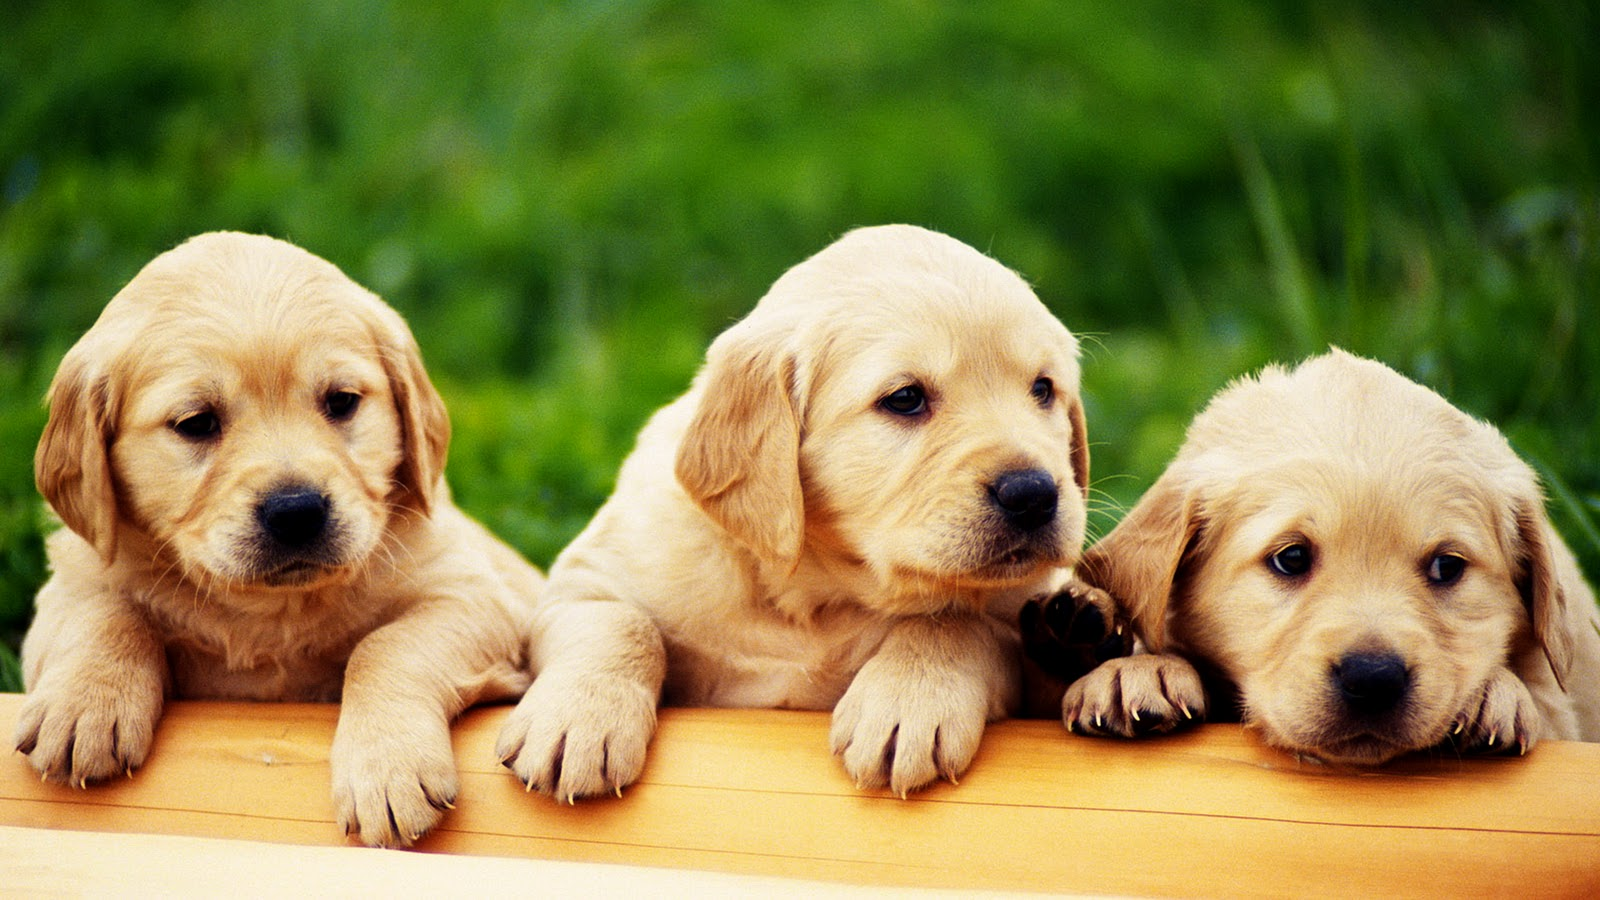 Cute Puppies HD Wallpapers Collection ~ Desktop Wallpaper